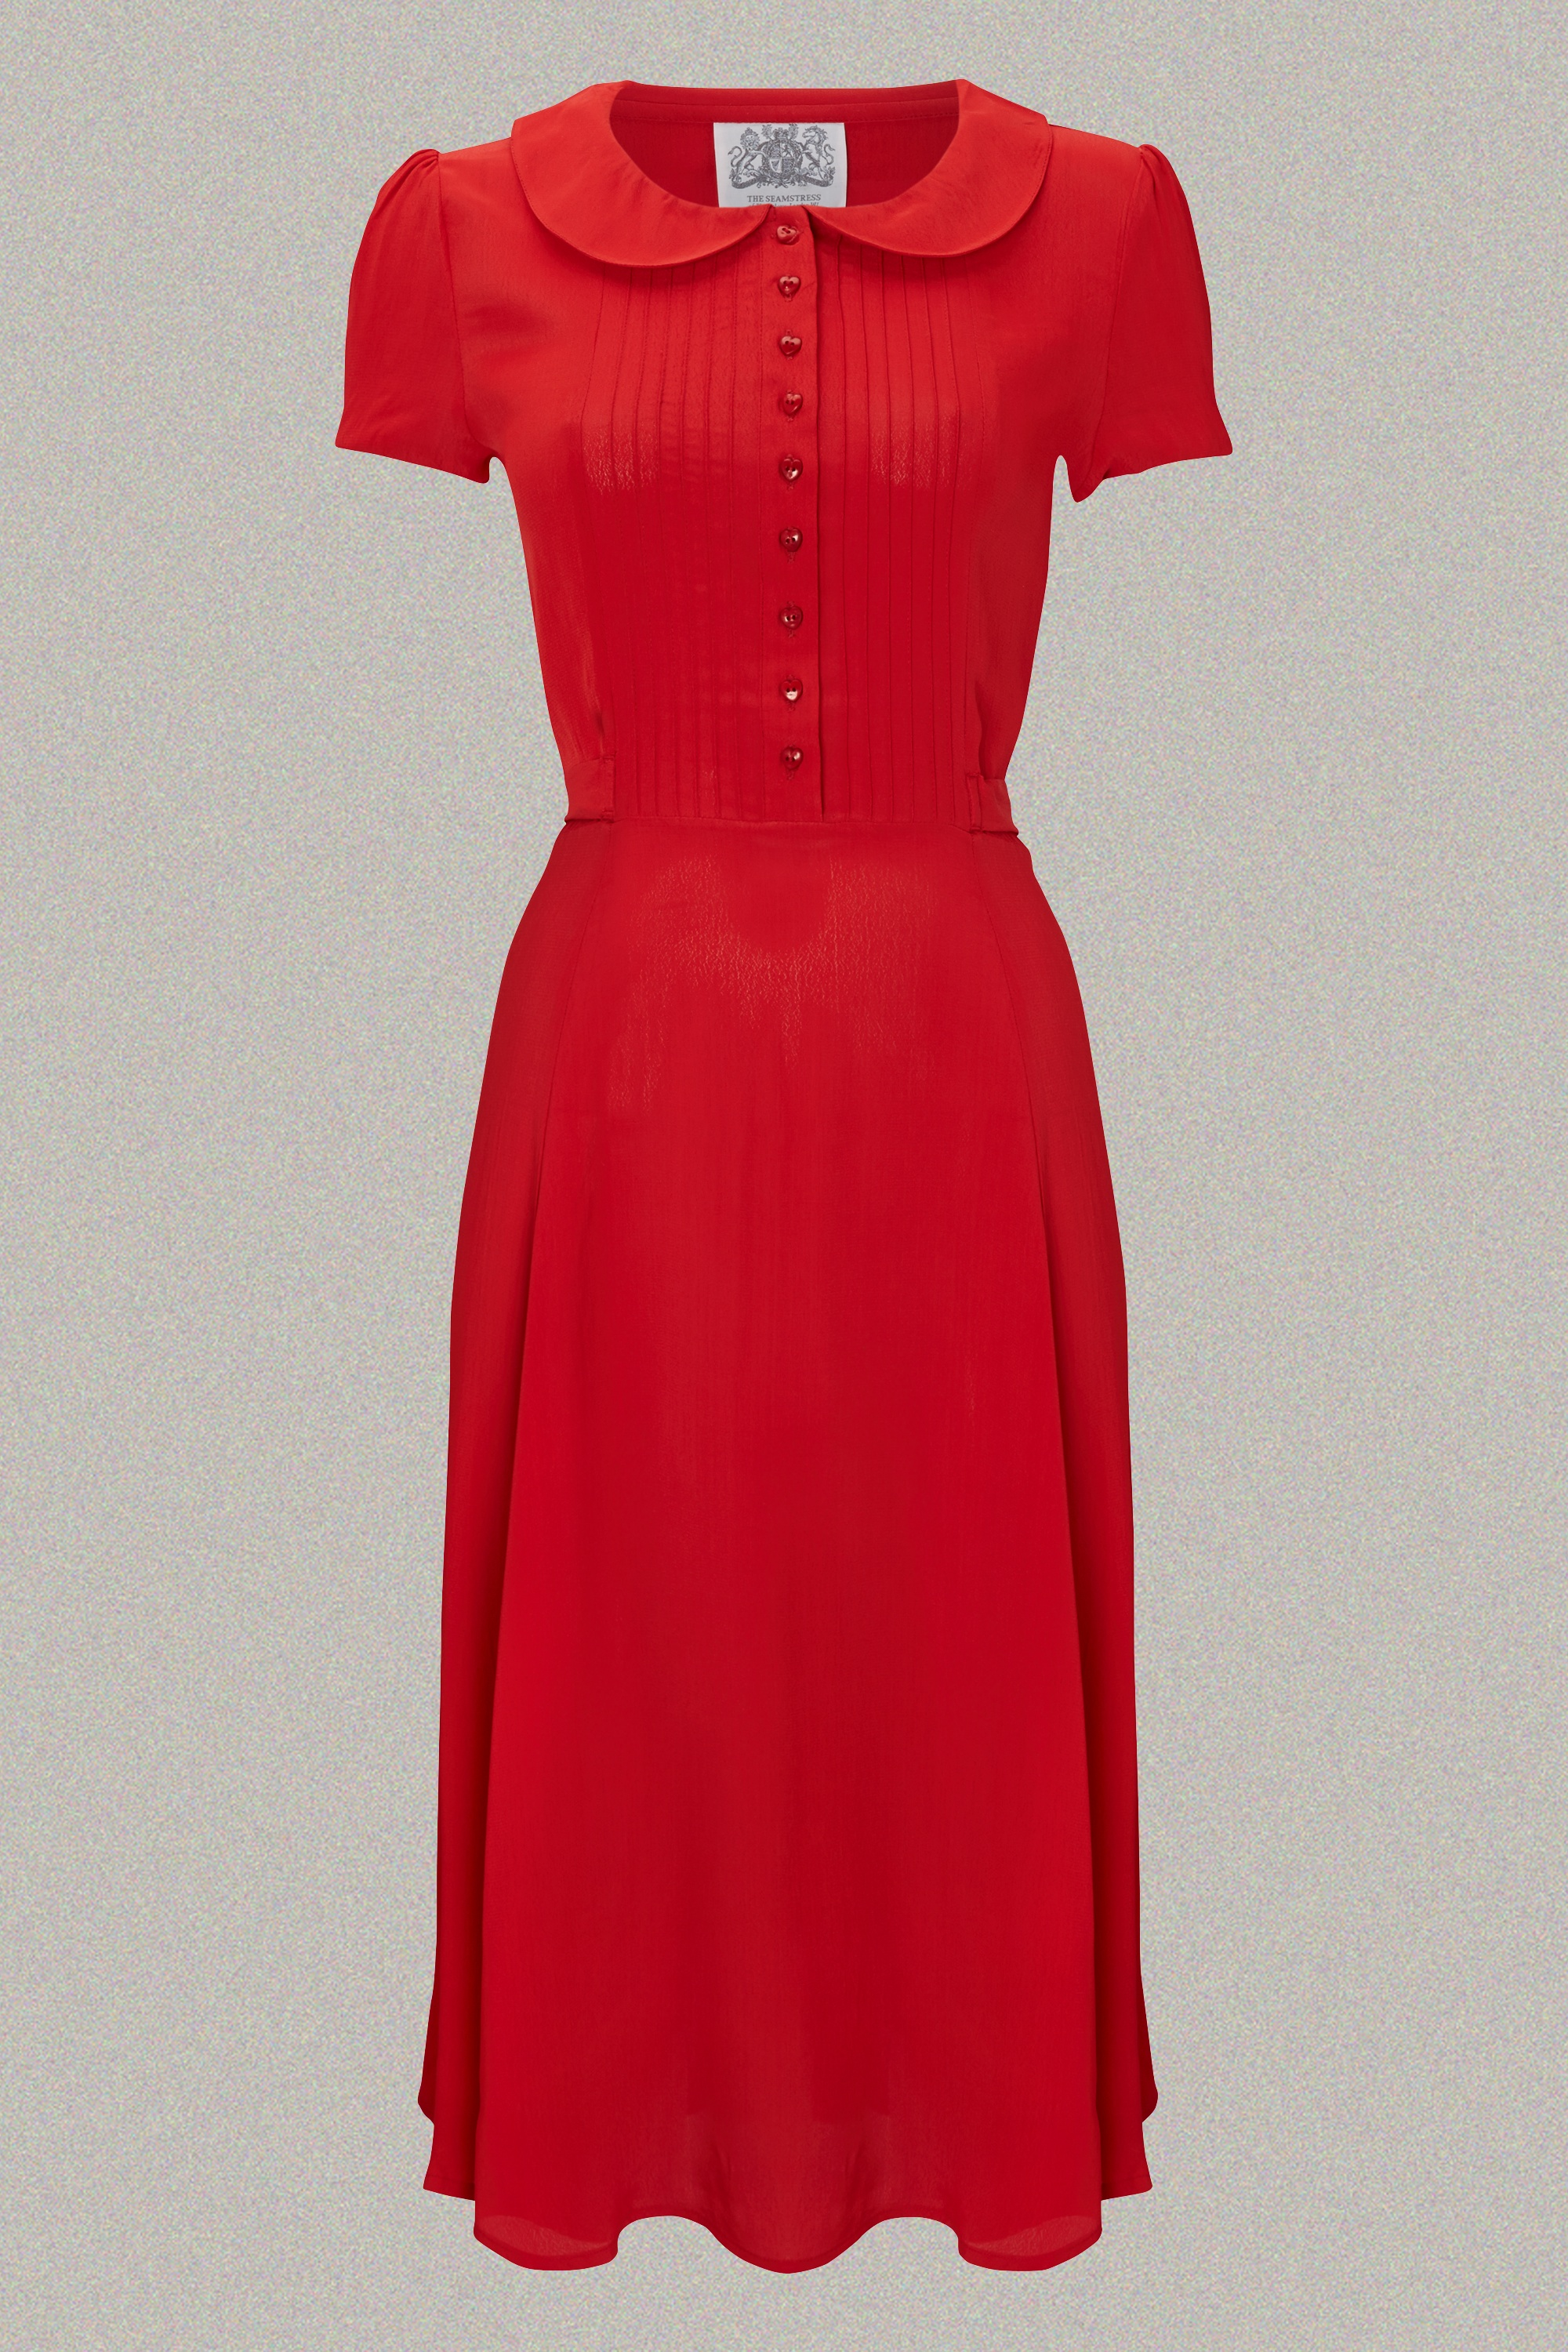 1940s Dresses | 40s Dress, Swing Dress Dorothy Dress - Red 8 £79.00 AT vintagedancer.com